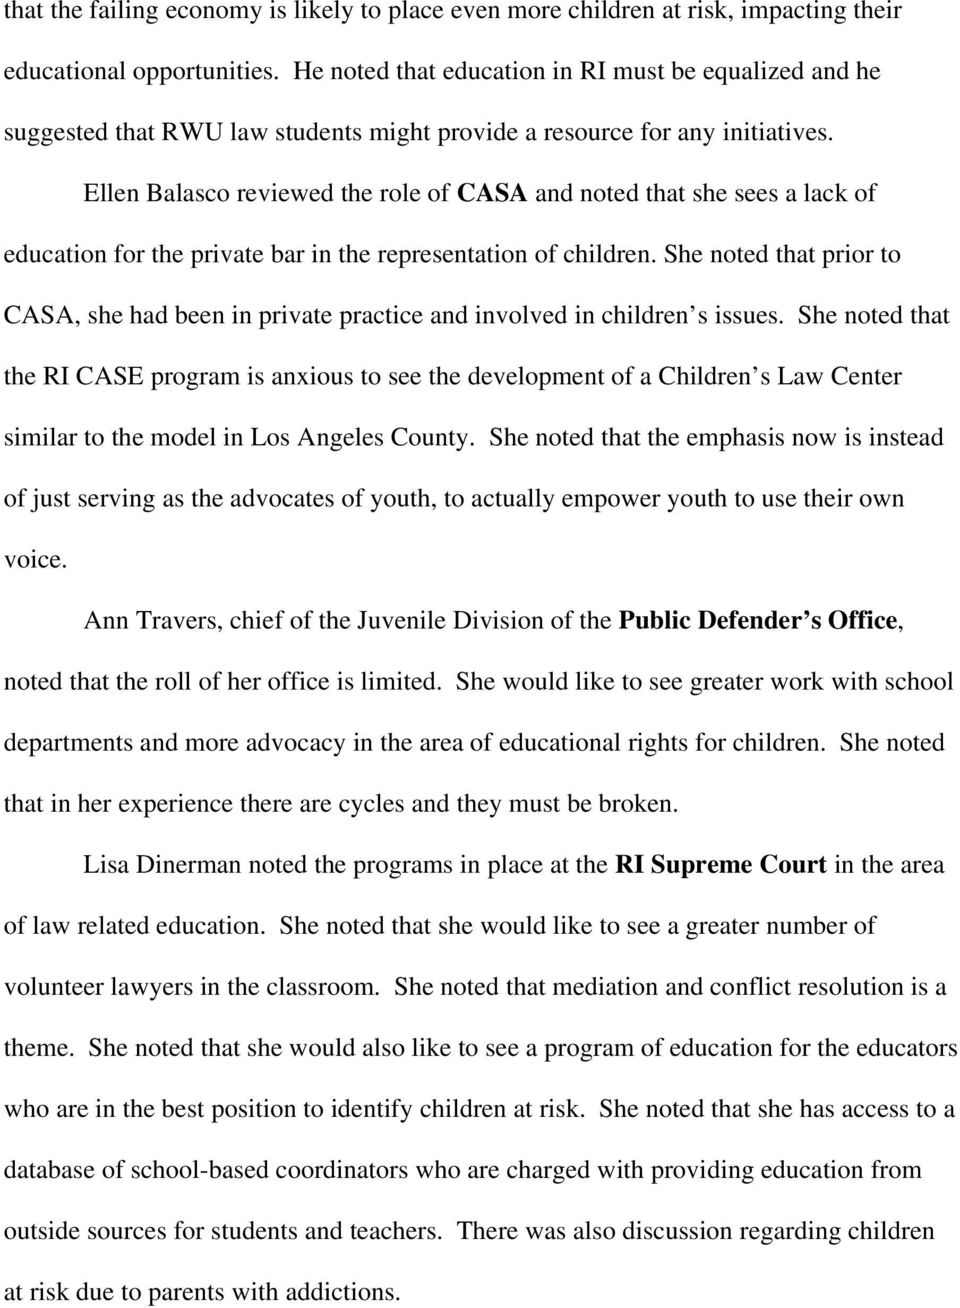 Ellen Balasco reviewed the role of CASA and noted that she sees a lack of education for the private bar in the representation of children.